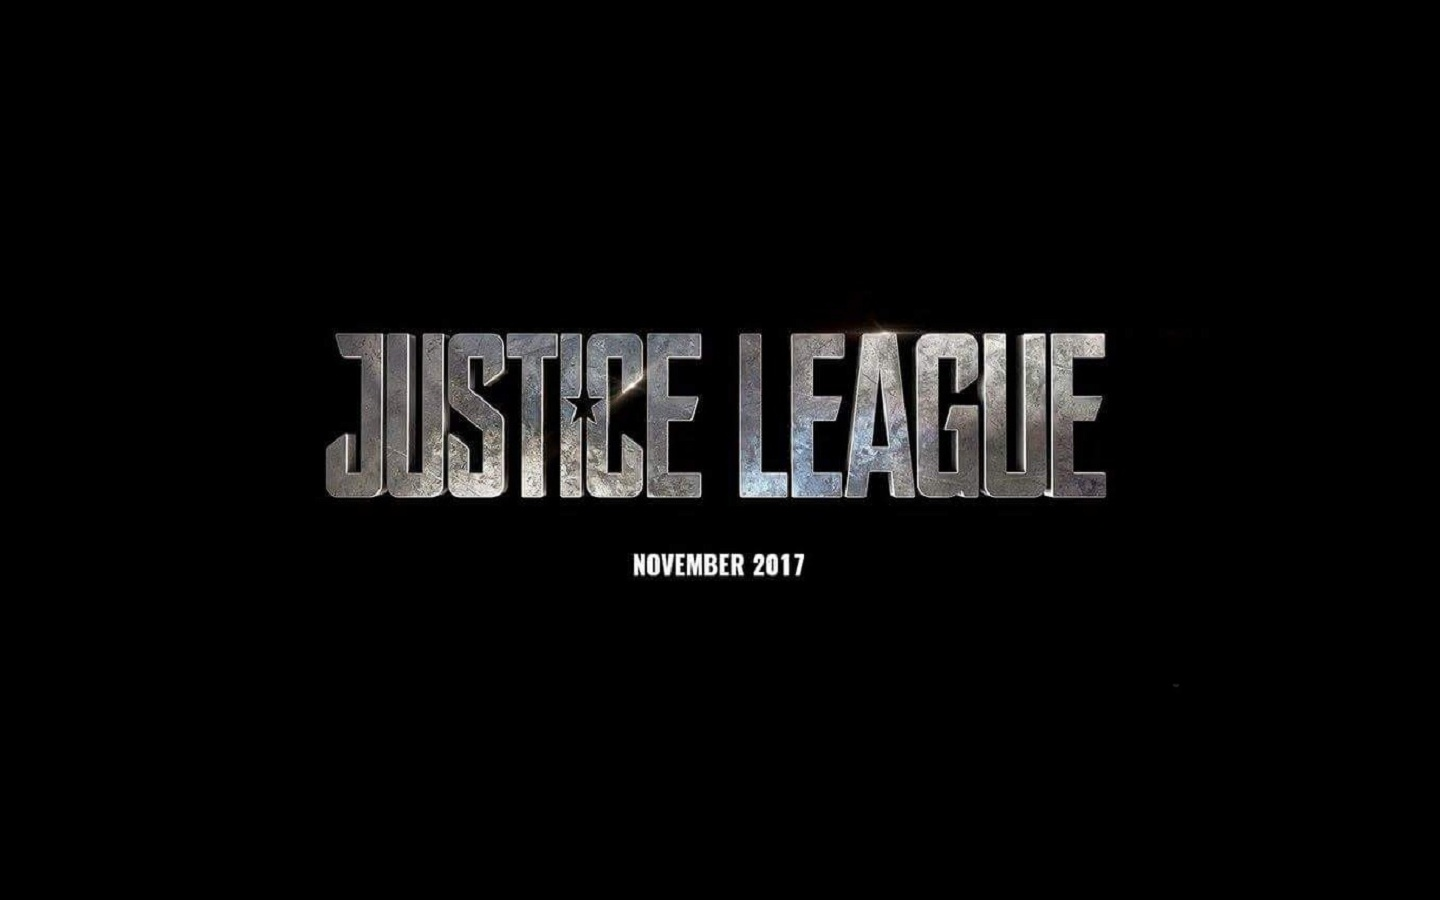 justice league movie logo wallpaper wallpaper and